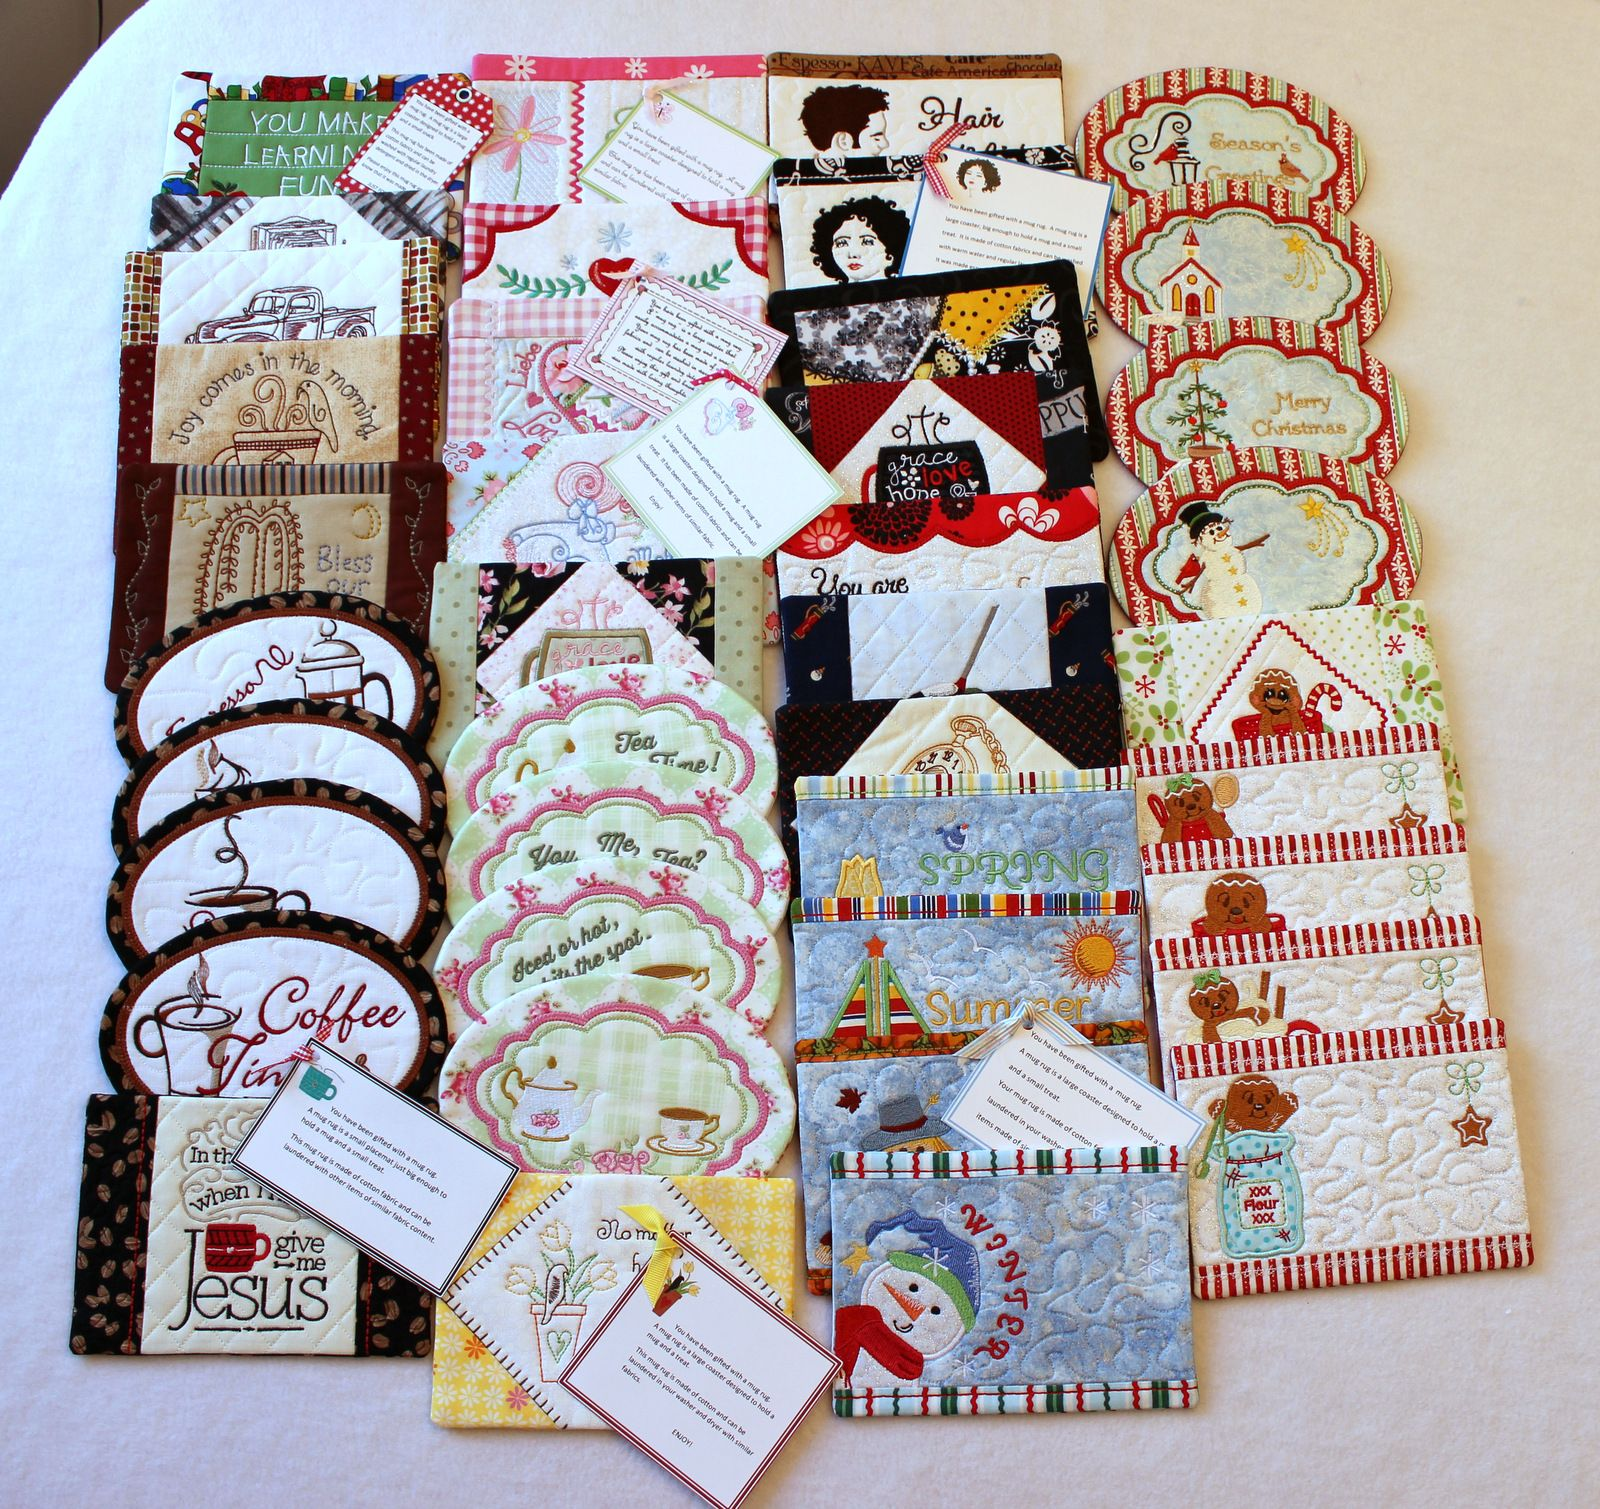 40 In The Hoop Mug Rugs One Incredible Collection This Ultimate Set Is For Embroidery Patterns Freeembroidery